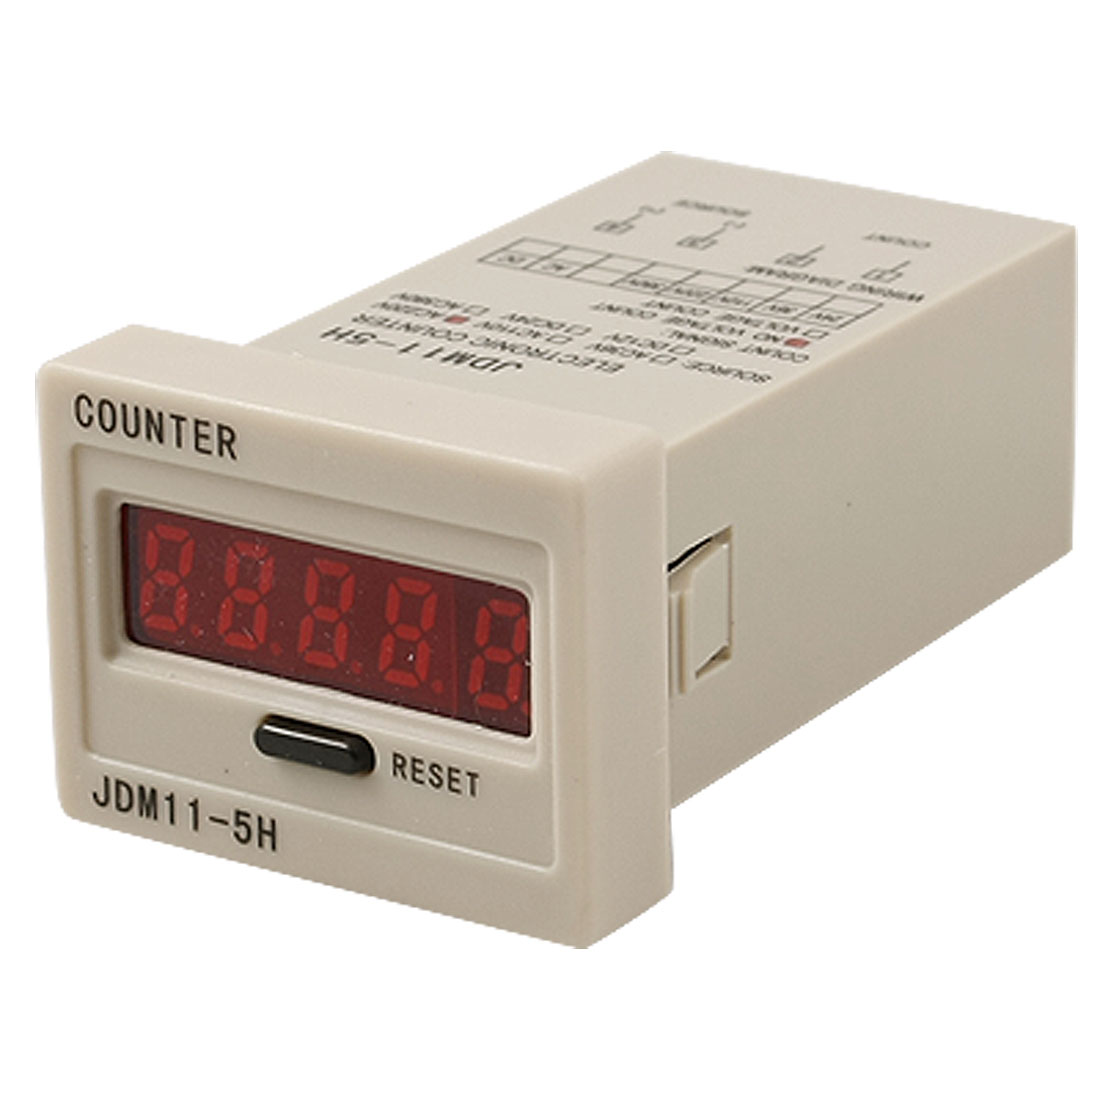 Reset Panel Mode 5-Digit LED Display Electric Counter AC 220V